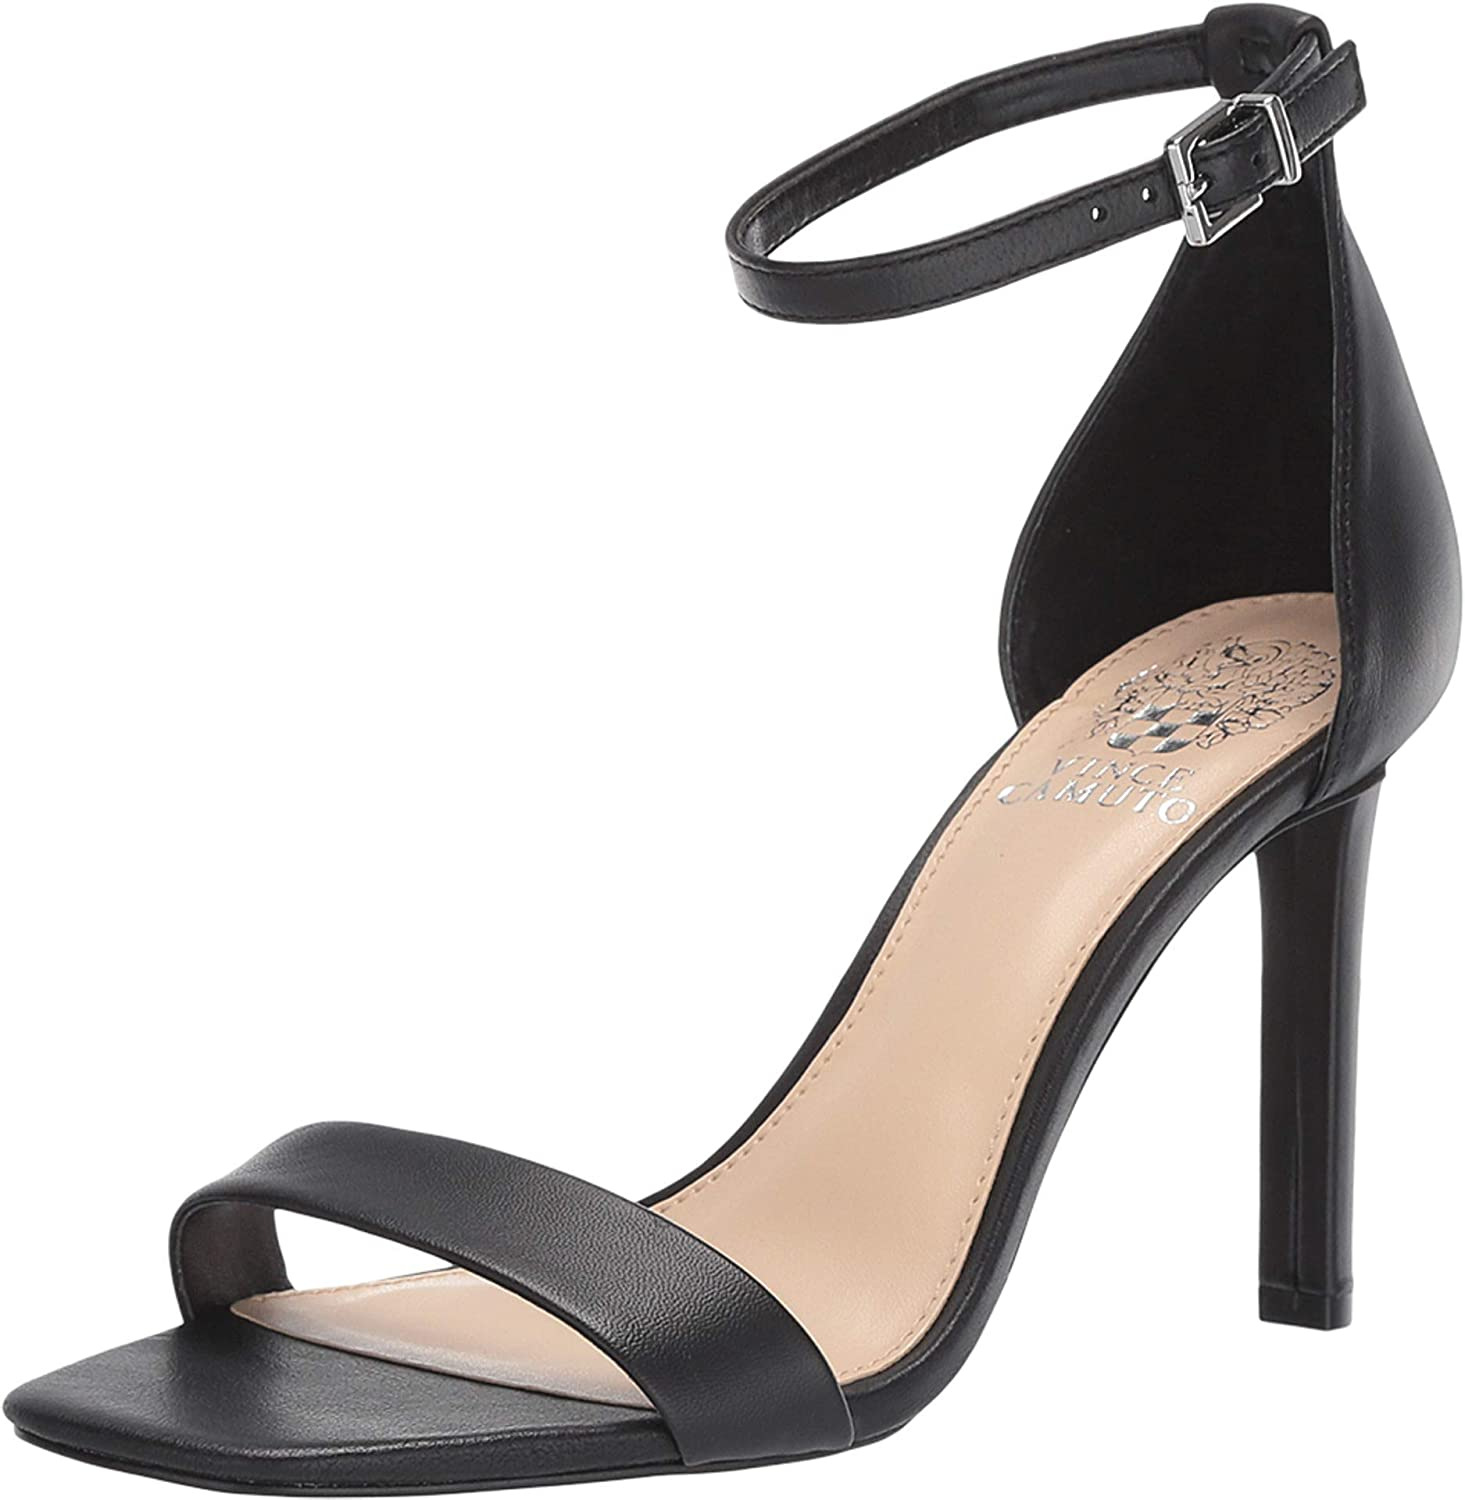 Vince Camuto service Year-end annual account Women's Pump Lauralie